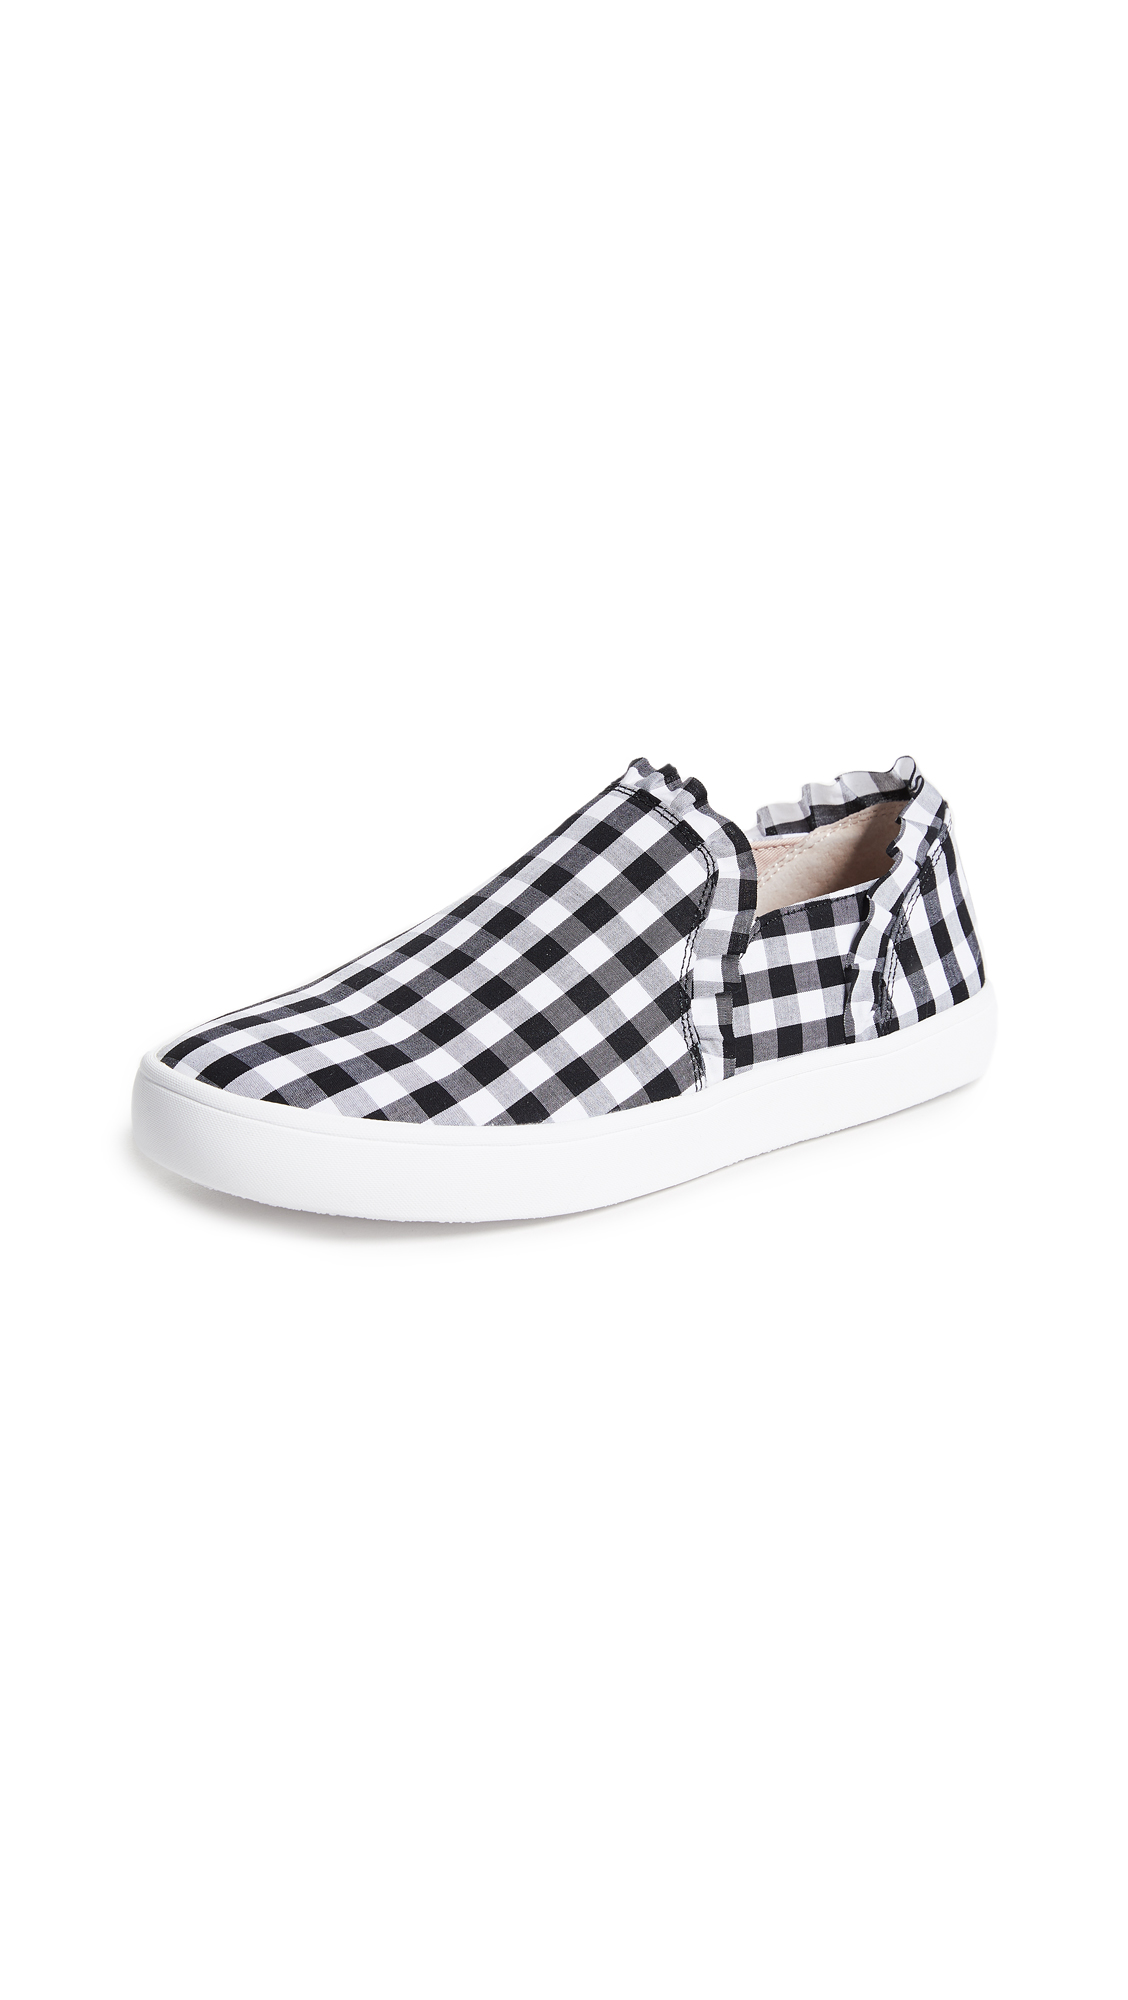 Kate Spade New York Lilly Gingham Sneakers - Black/White